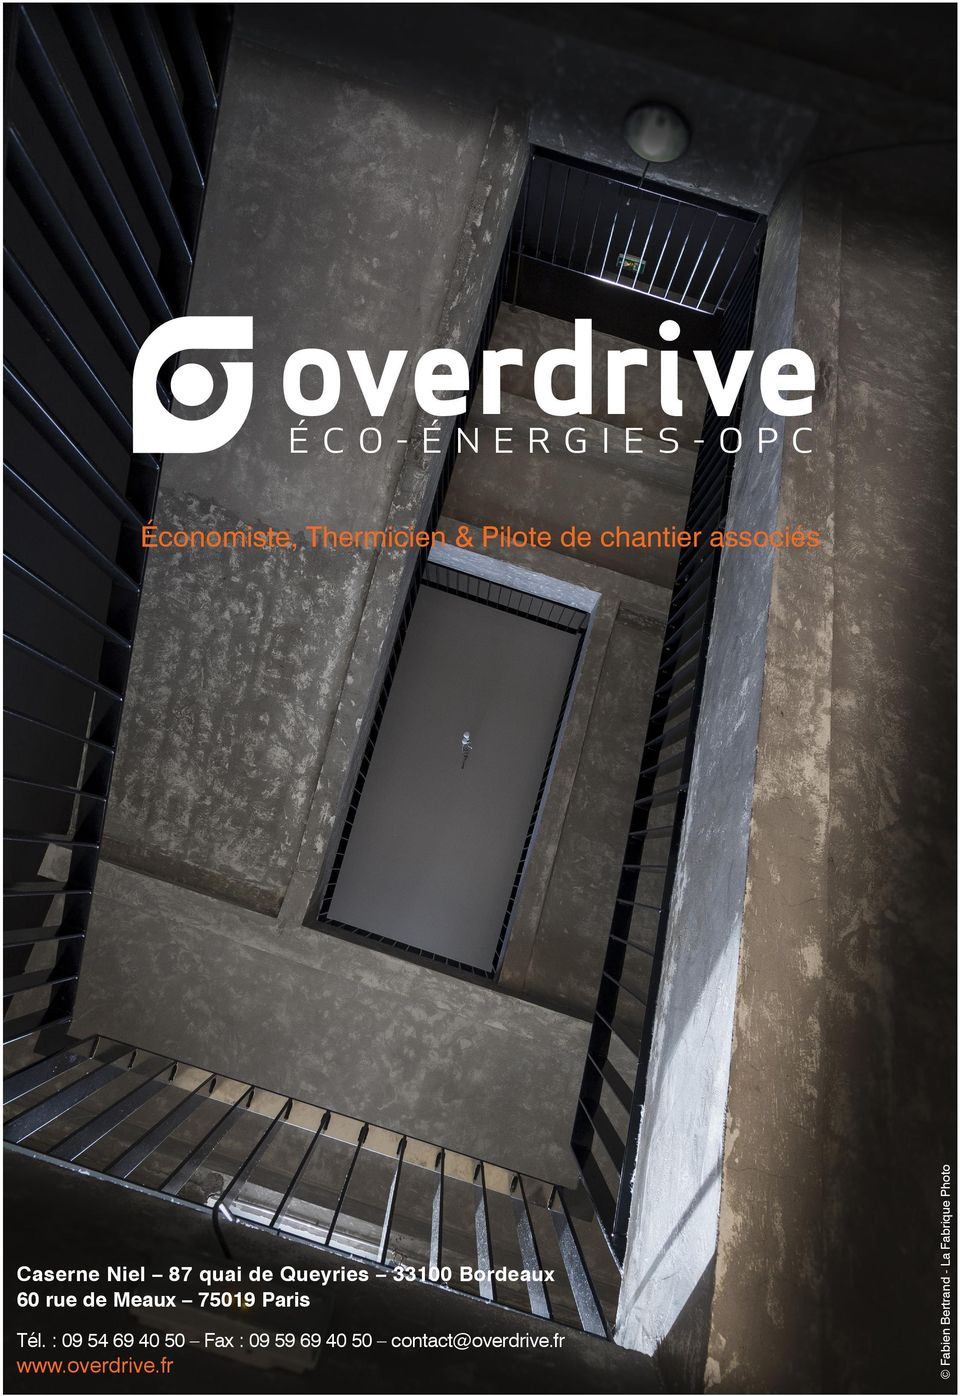 : 09 54 69 40 50 Fax : 09 59 69 40 50 contact@overdrive.fr www.